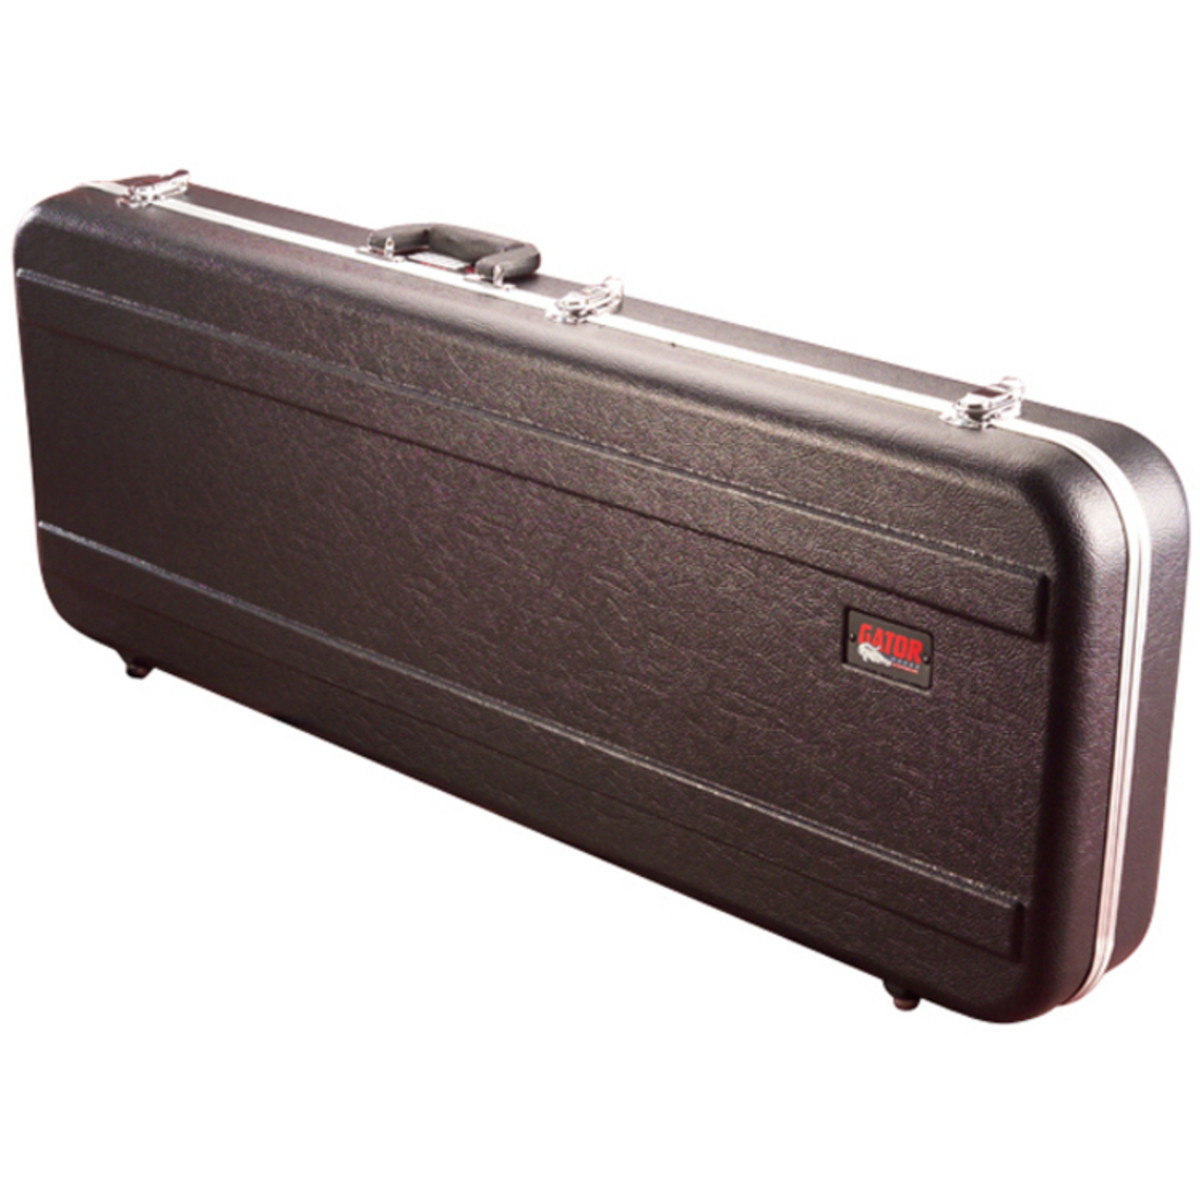 b7ed608e44 Gator Deluxe Extra Long 'Fit All' Electric Guitar Case - B-Stock at ...